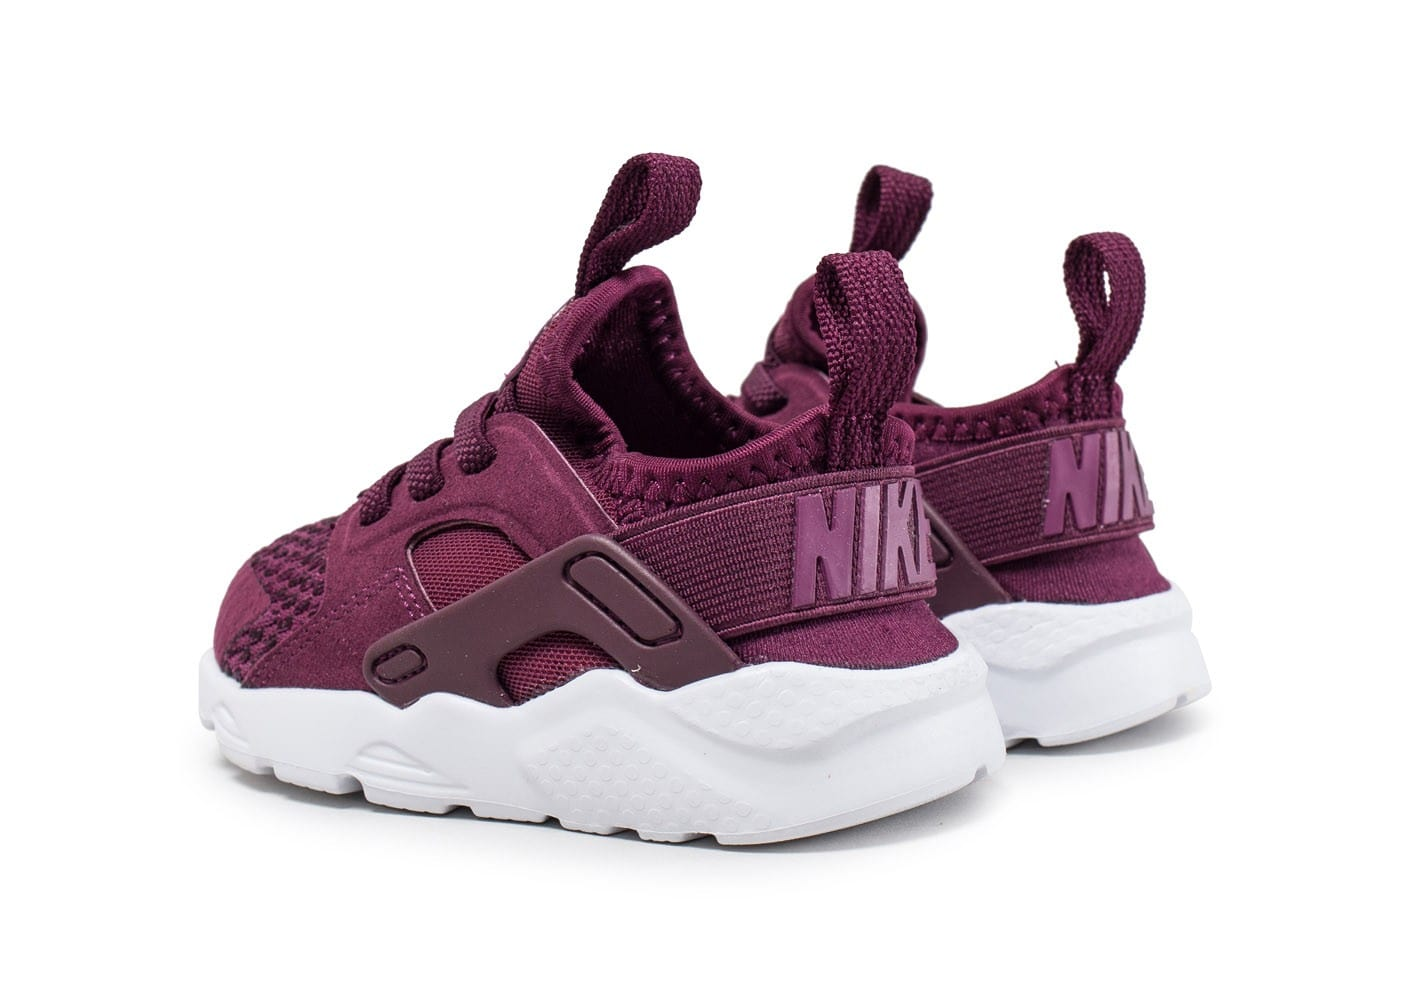 nike air huarache ultra b b bordeaux chaussures enfant chausport. Black Bedroom Furniture Sets. Home Design Ideas